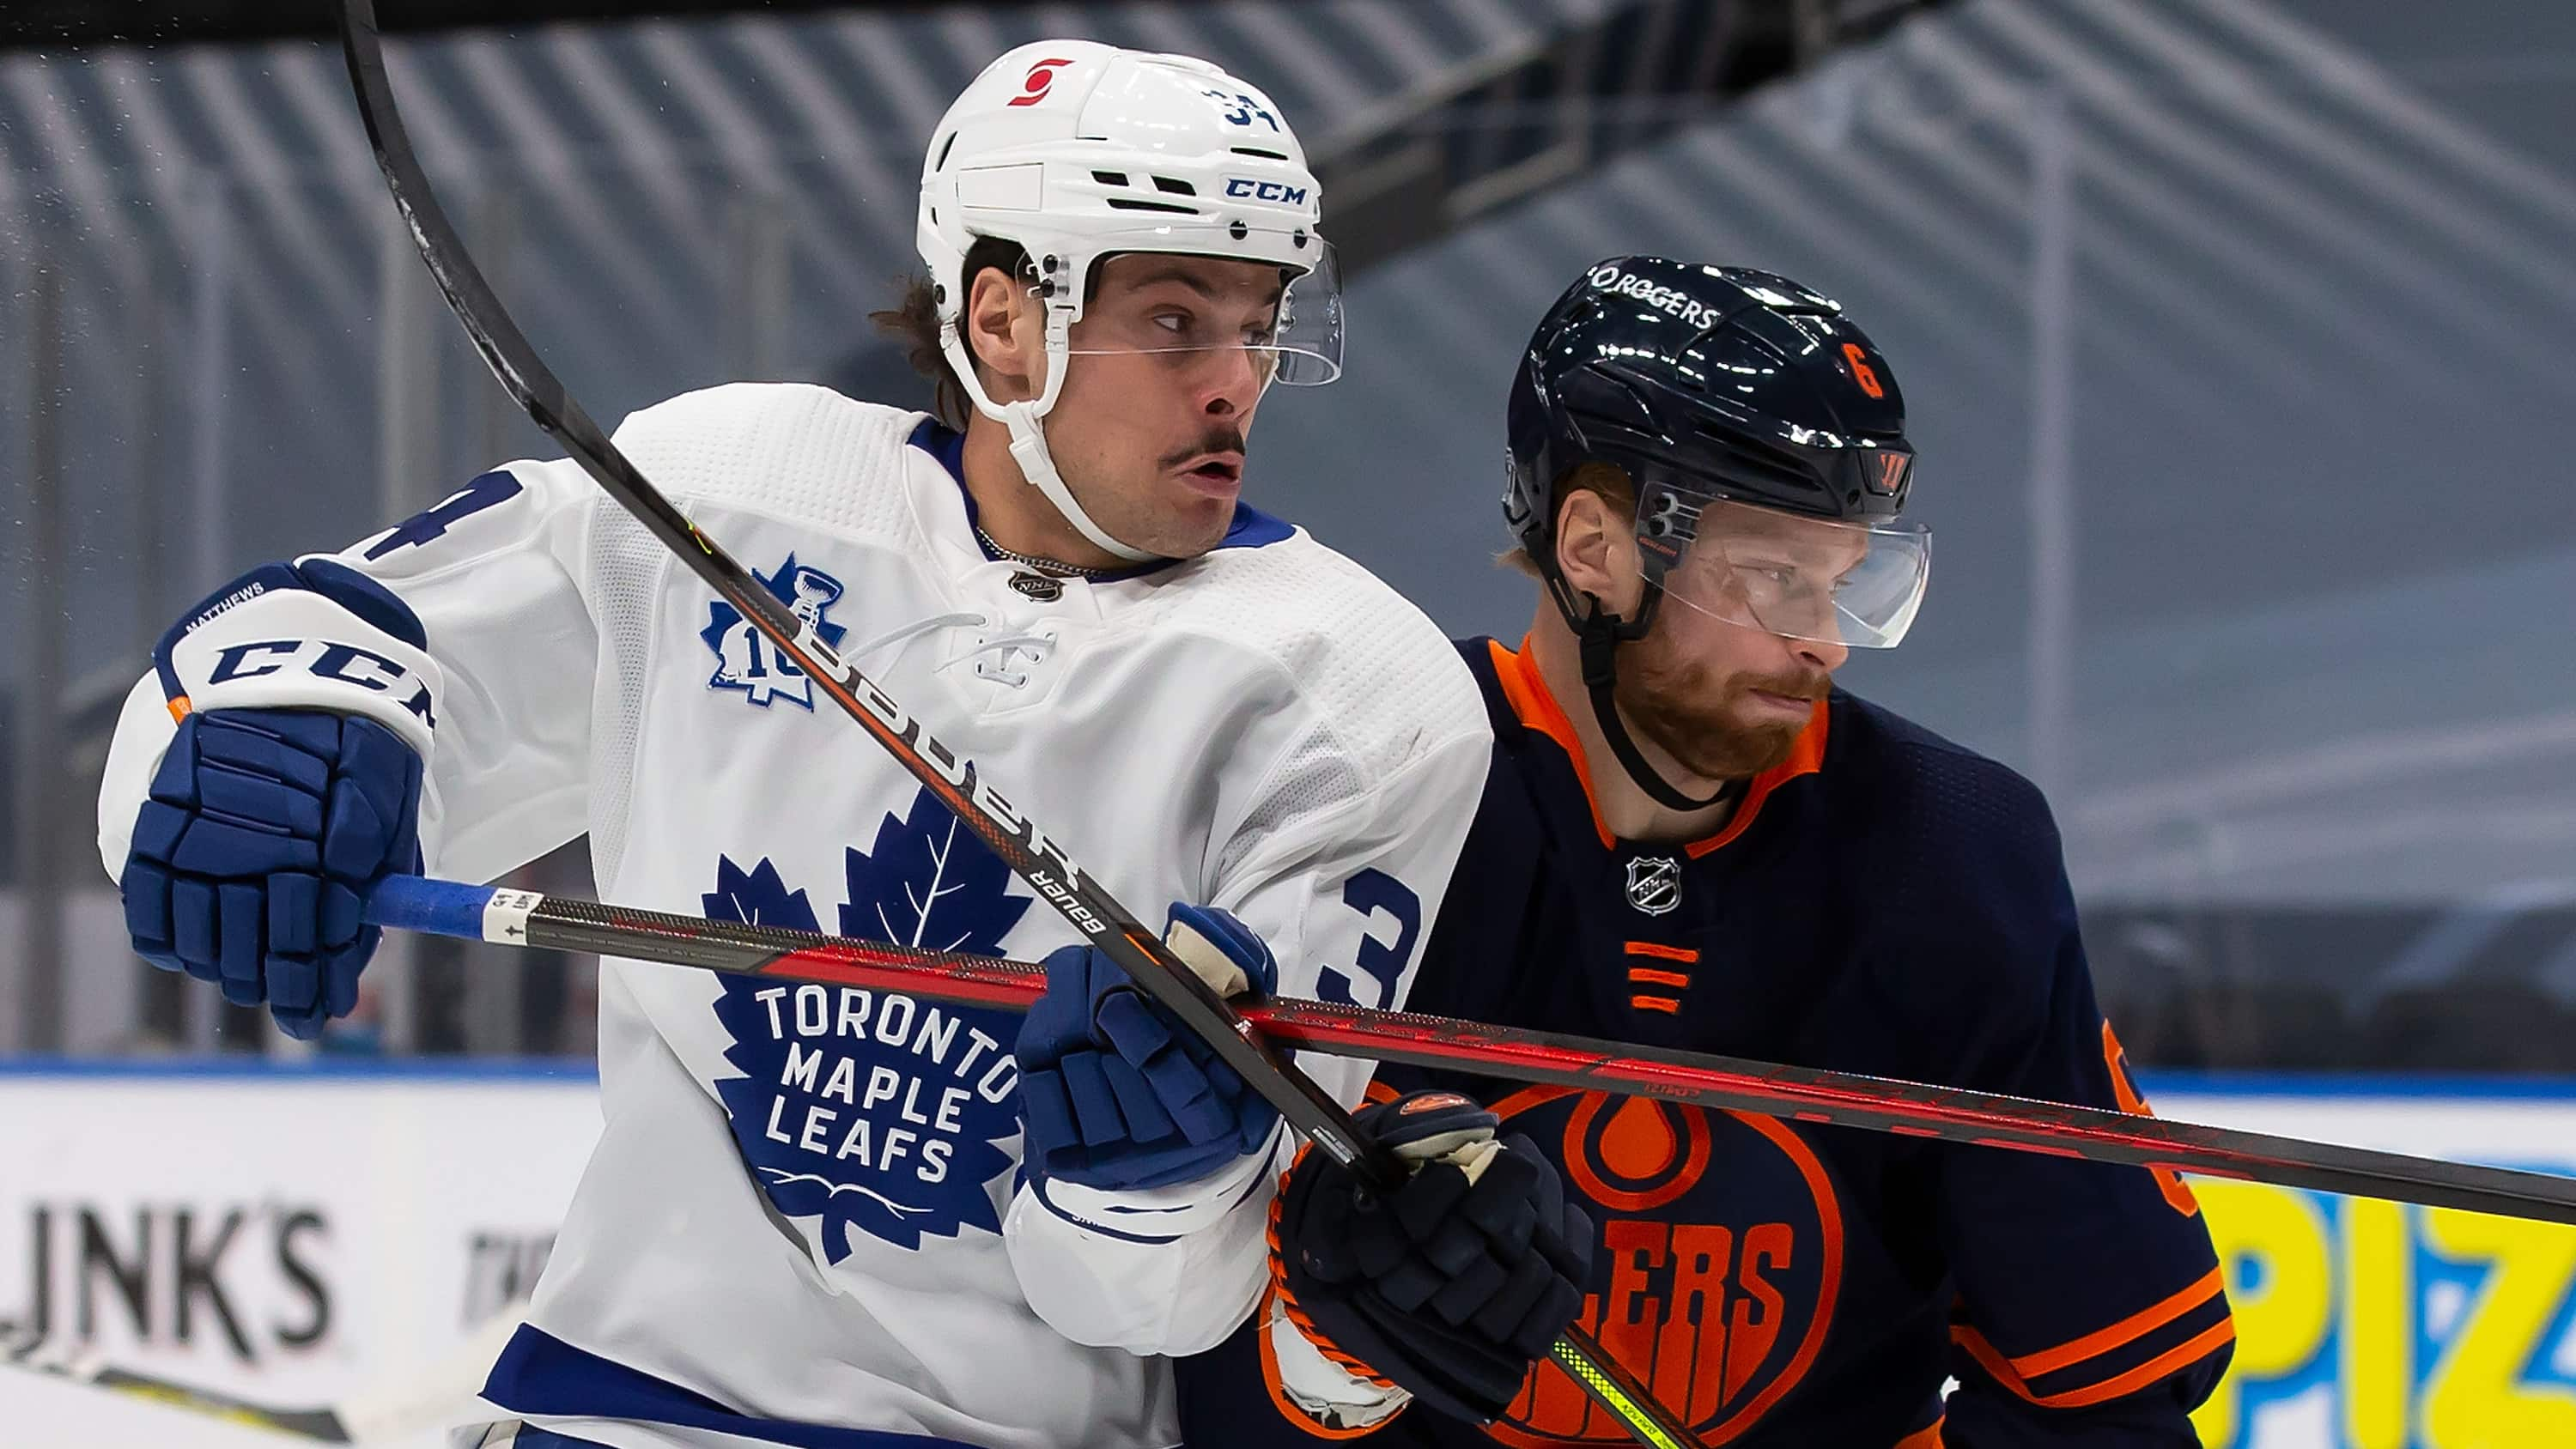 McDavid tips the scales for the Oilers